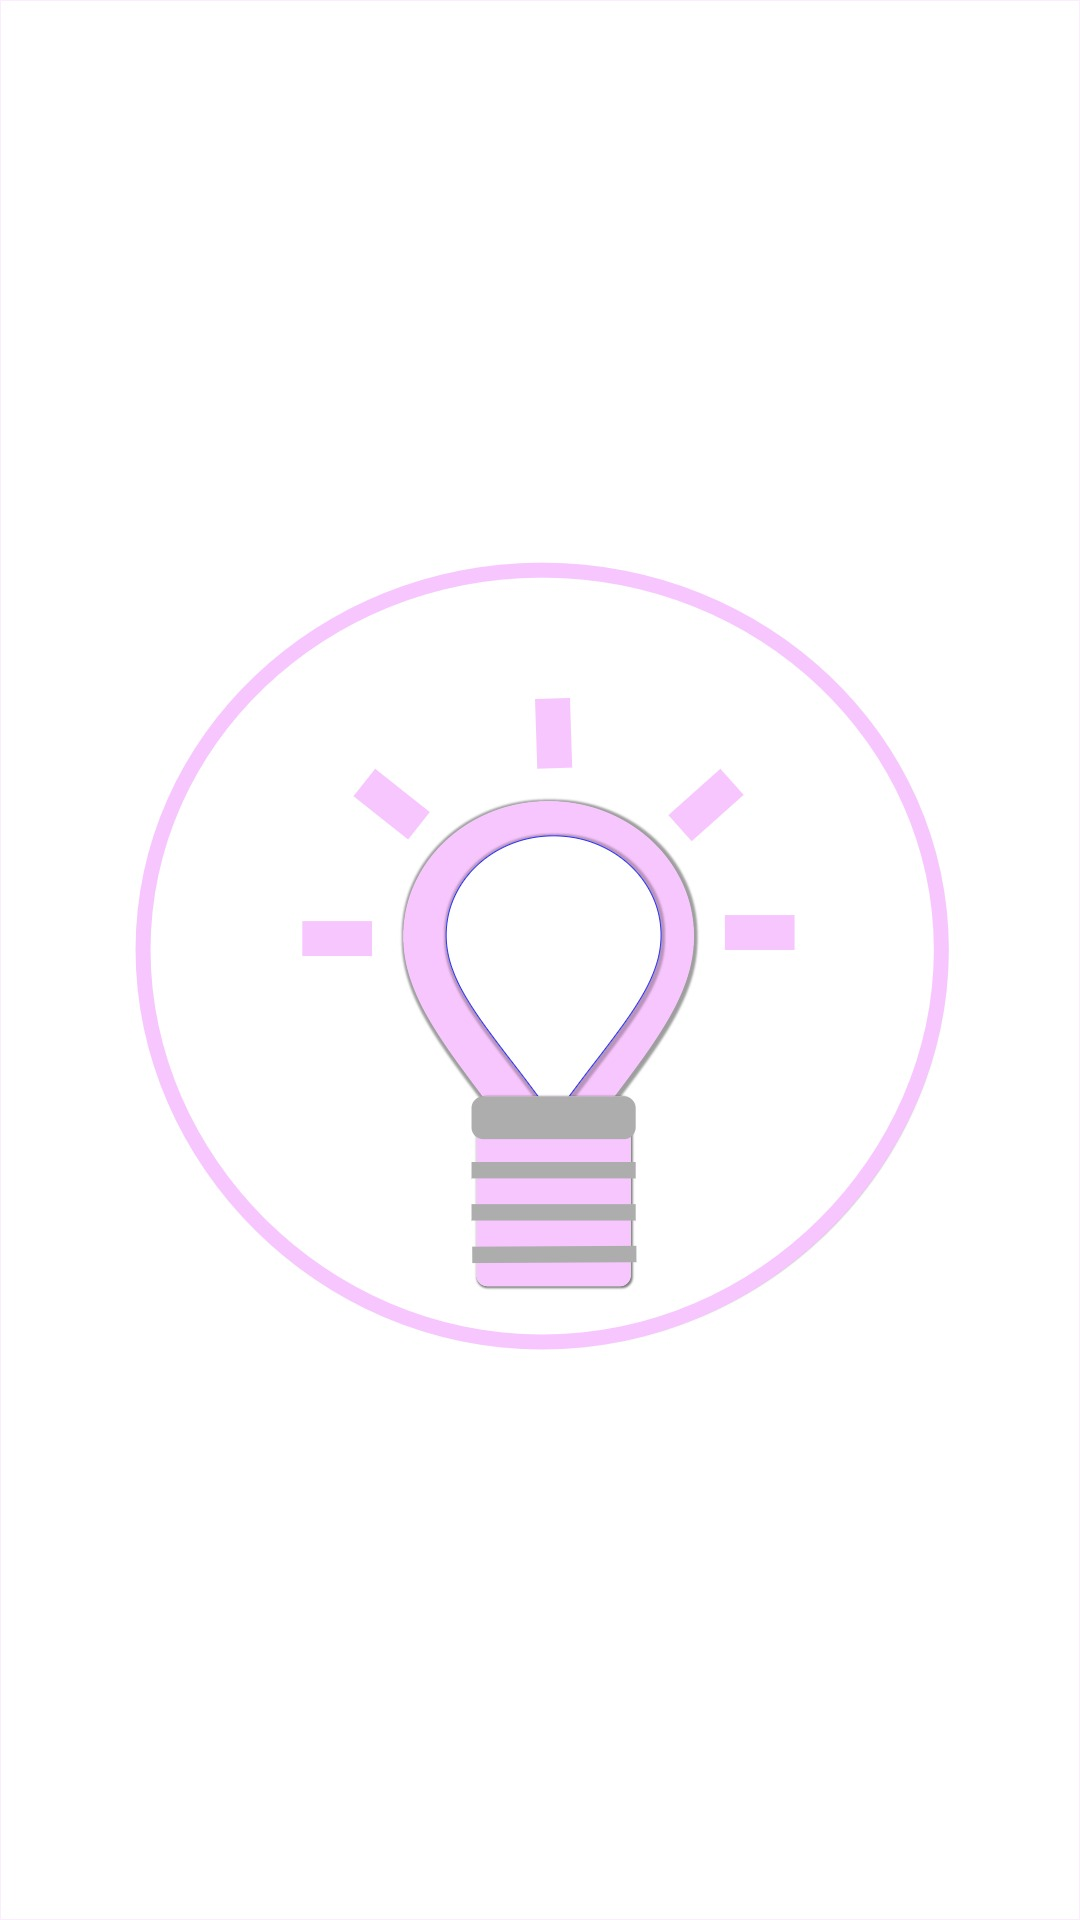 Instagram-cover-lightbulb-pink-white-lotnotes.jpg